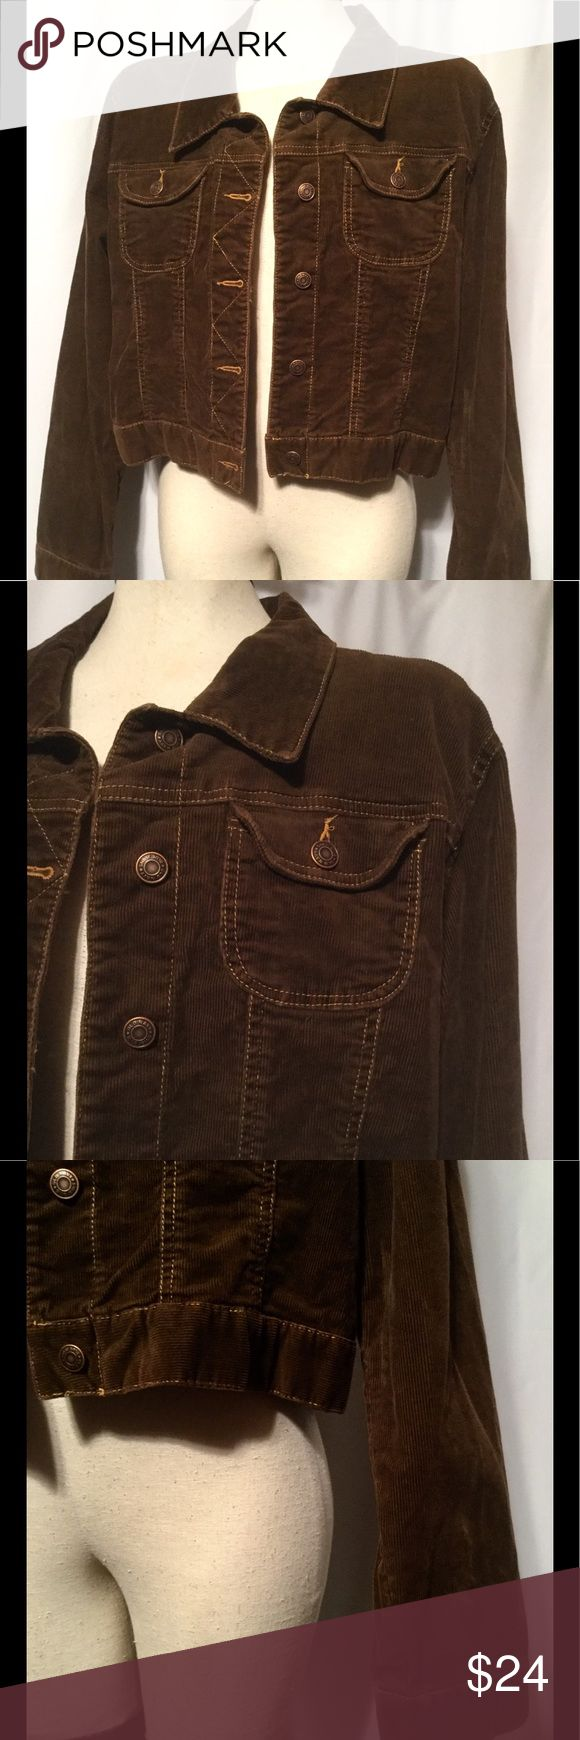 """OLD NAVY Brown Corduroy Jacket OLD NAVY  NEW without tags ~ EXCELLENT condition!  5 metal front buttons ~ Adjustable buttoned waistband  SIZE: XL  COLORS: Brown MATERIAL: 98% Cotton, 2% Spandex BREAST: Pit-to-Pit – 23"""" across / 46"""" around  OVERALL LENGTH: 20""""  SHOULDER SEAM to SEAM: 19""""  SLEEVE LENGTH: 25"""" CARE: Machine Wash / Tumble Dry ITEM: GH6435 Old Navy Jackets & Coats"""